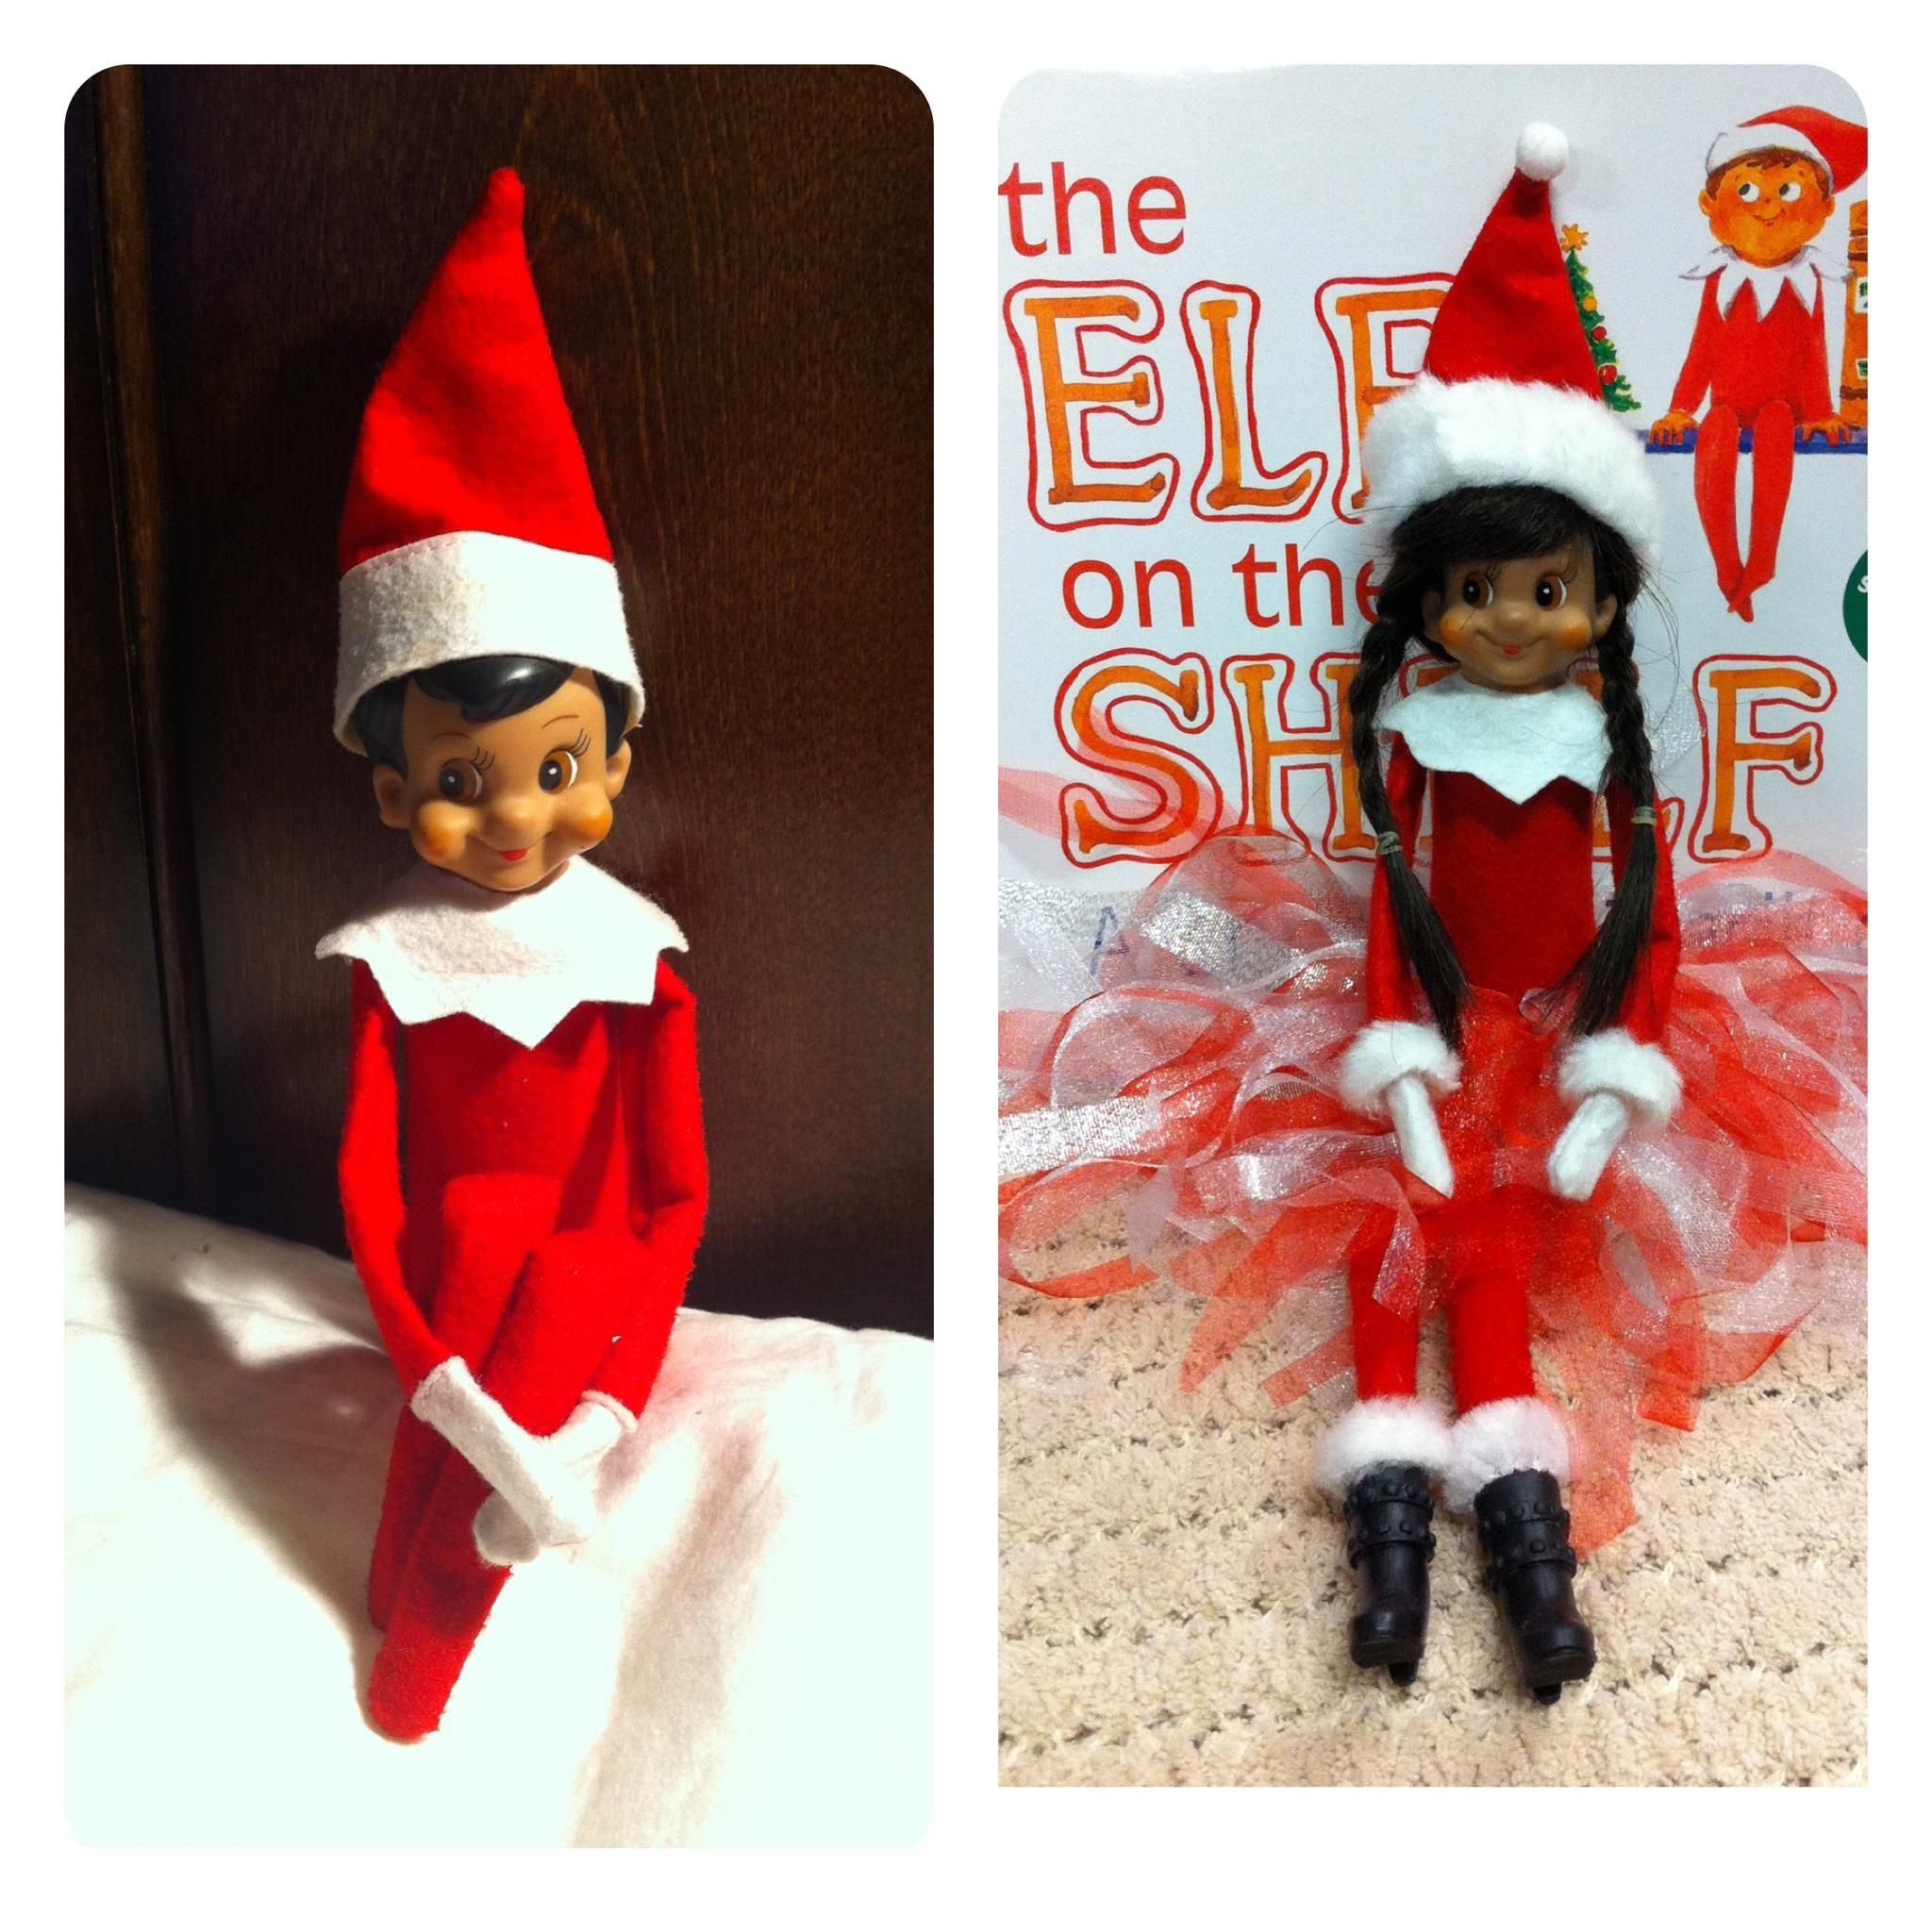 Elf on the shelf, transformation from boy to girl Elf on